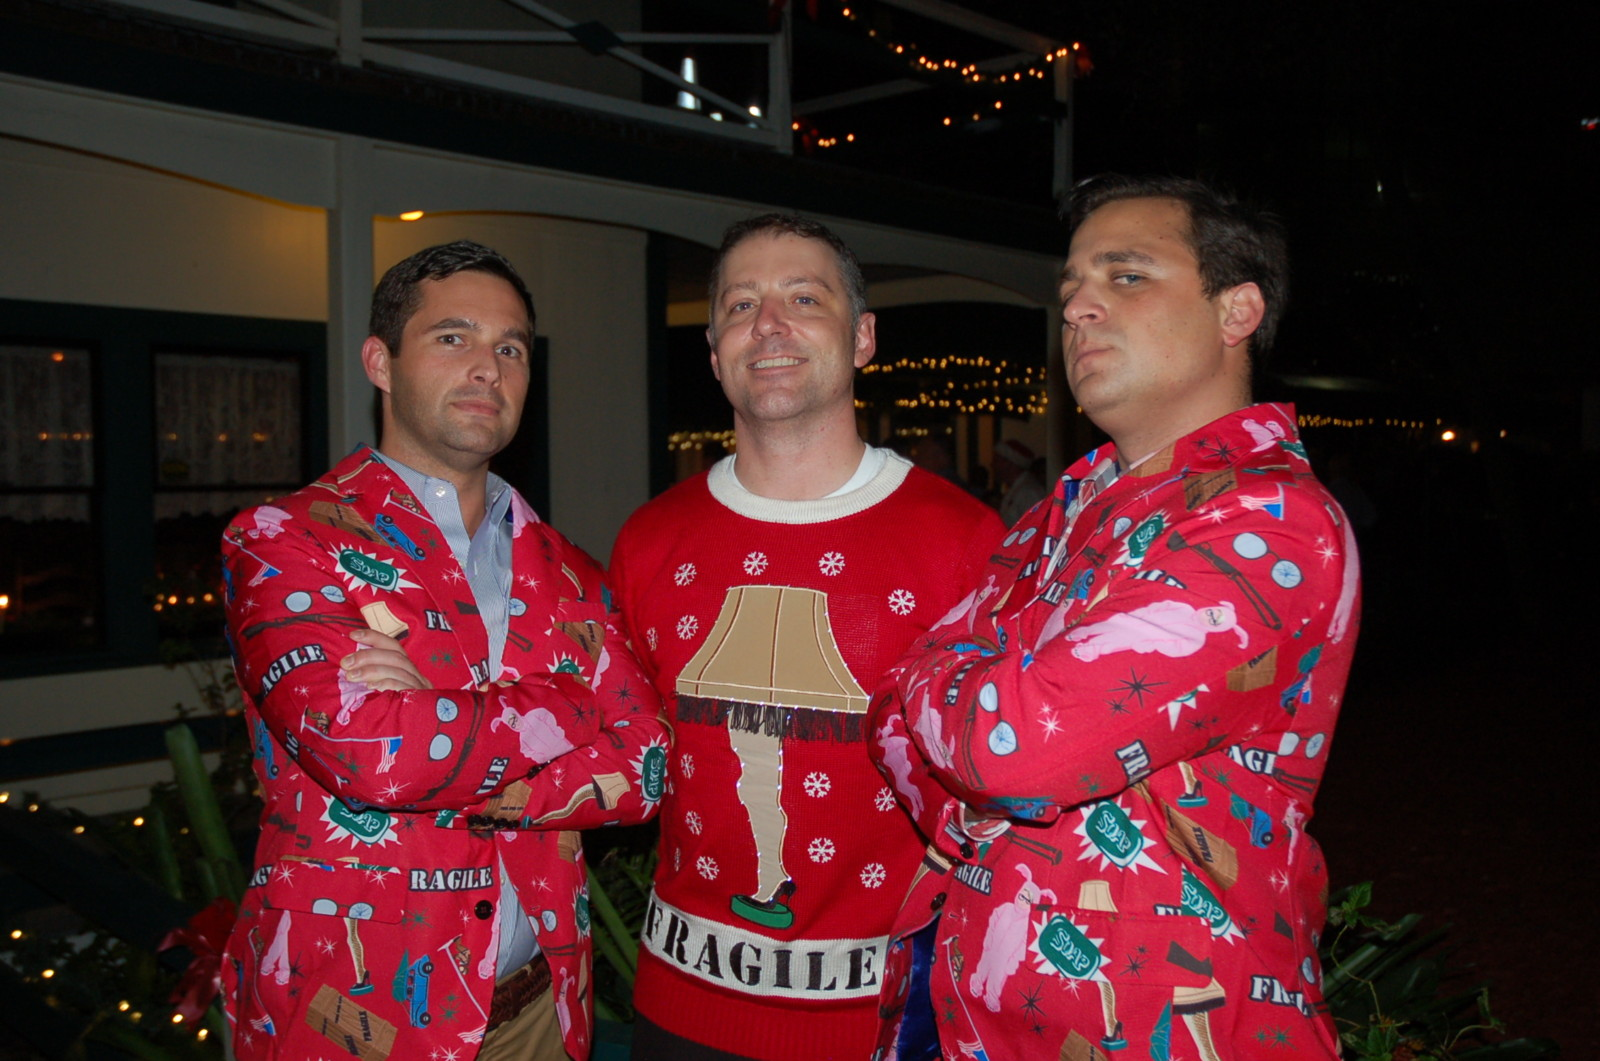 Marine industry groups celebrate the holidays for charity